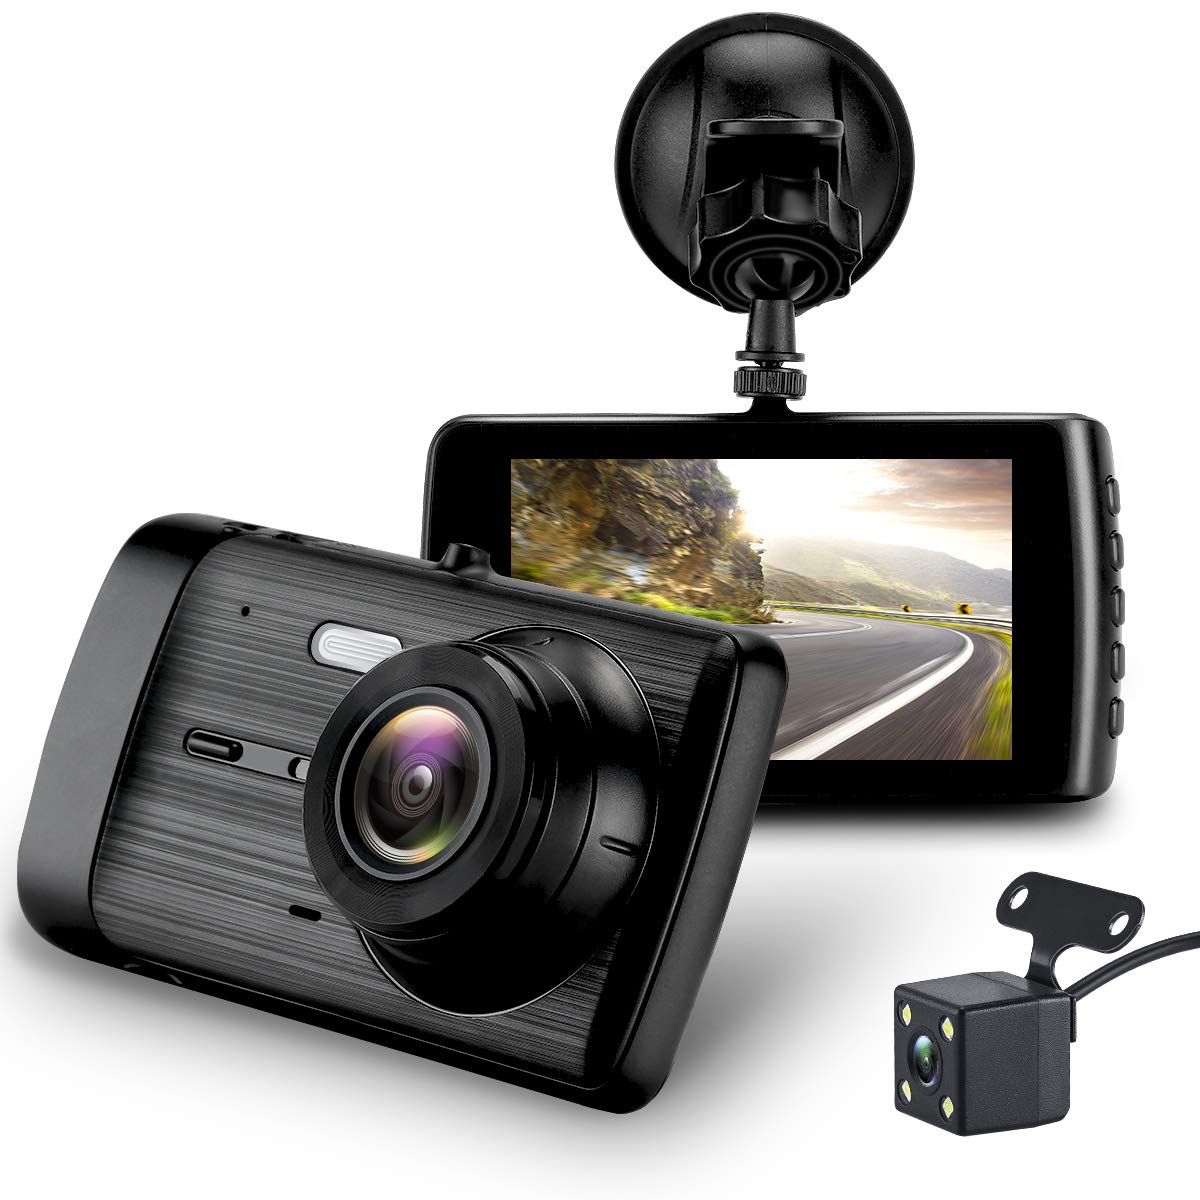 Dash Cam, Car Camera Dashboard Camera Recorder Car DVR 1080P HD Night Vision, Wide-angle Car Video Recorder with 3.7'' LCD inch Display Video G-Sensor Loop Recording